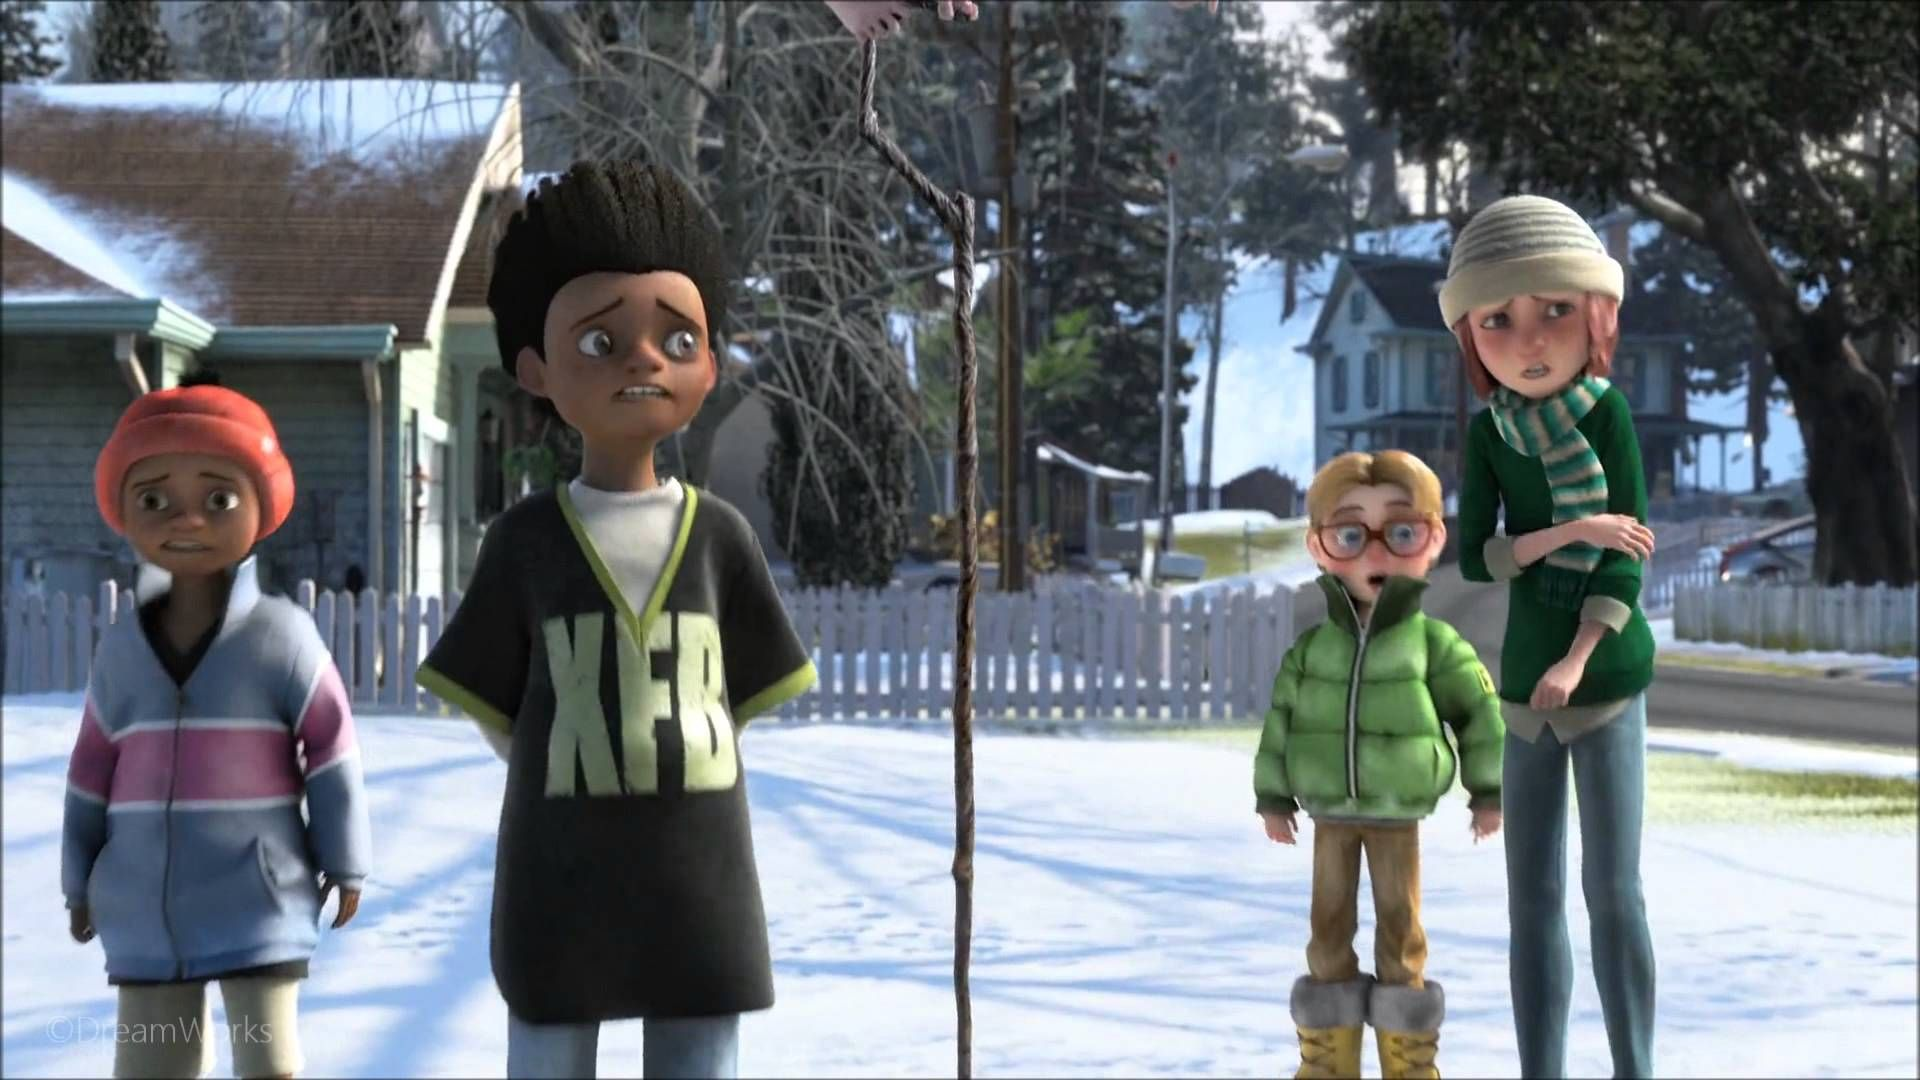 Rise Of The Guardians Snowball Fight Clip Hd Rise Of The Guardians Snowball Fight Snowball